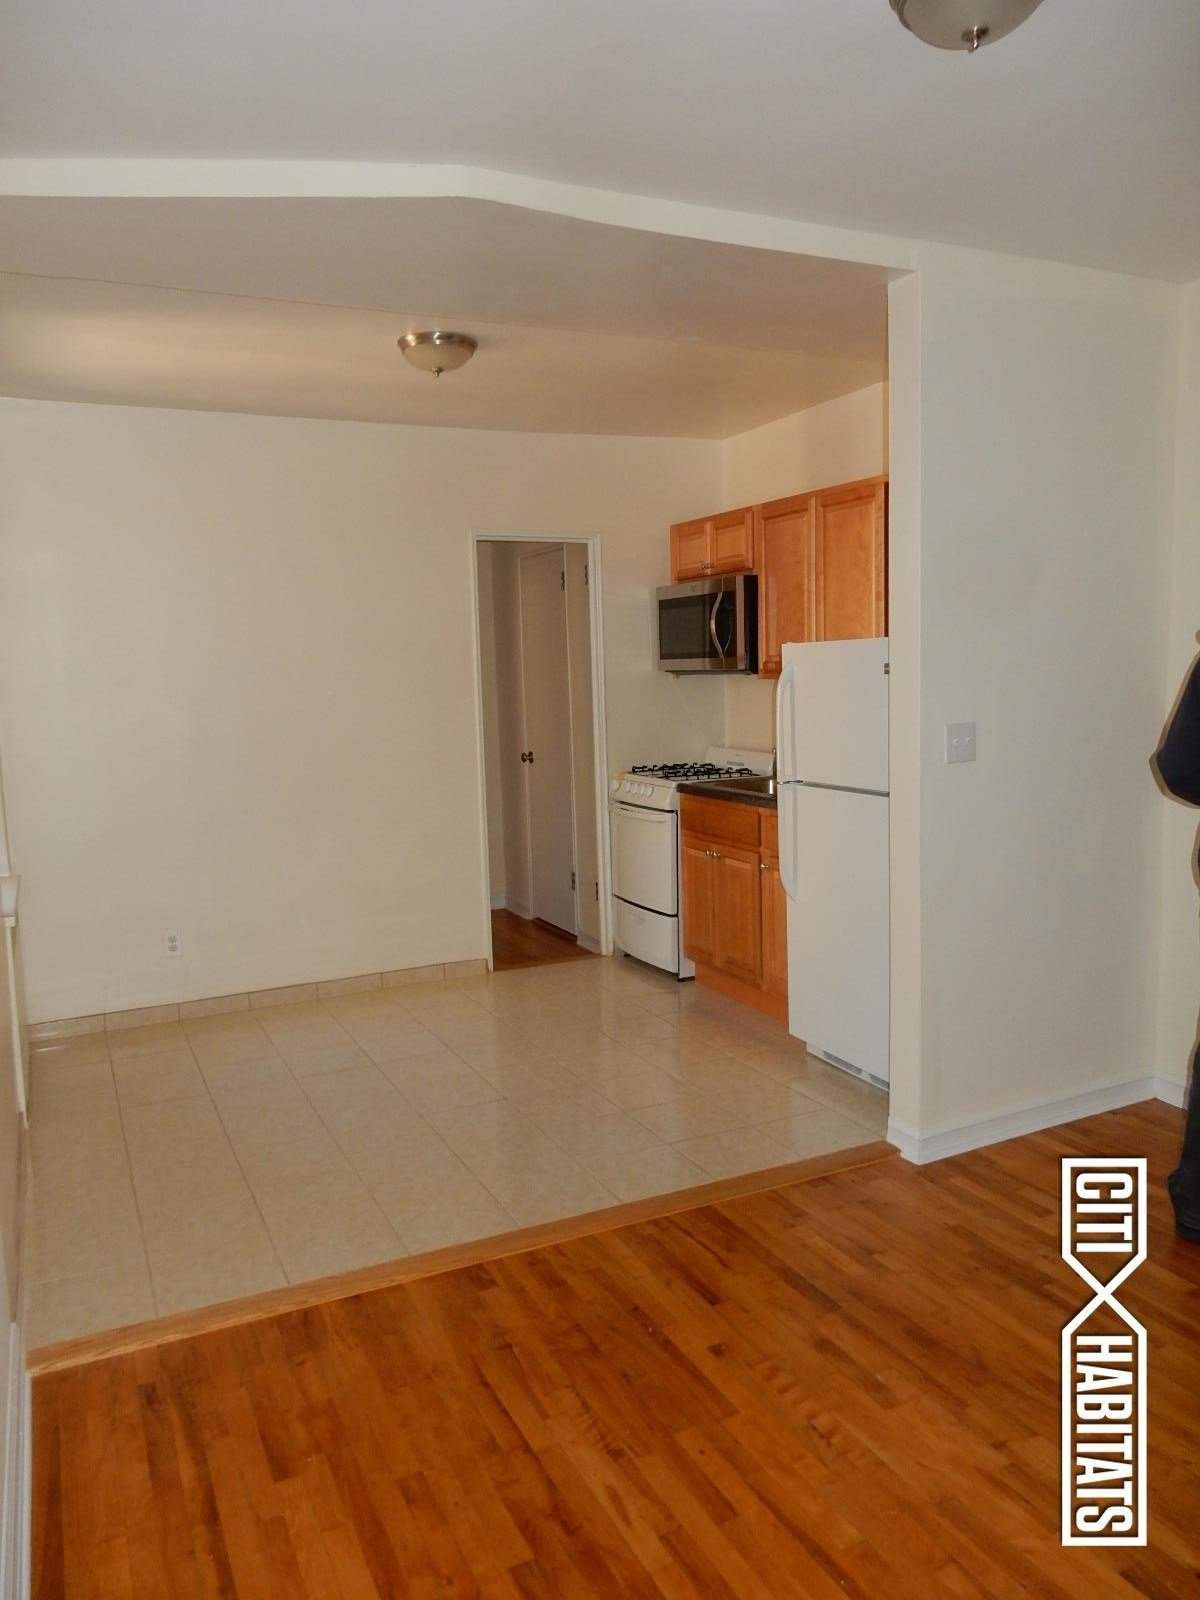 Best Kappock St 5A Bronx Ny 10463 1 Bedroom Apartment For With Pictures Original 1024 x 768